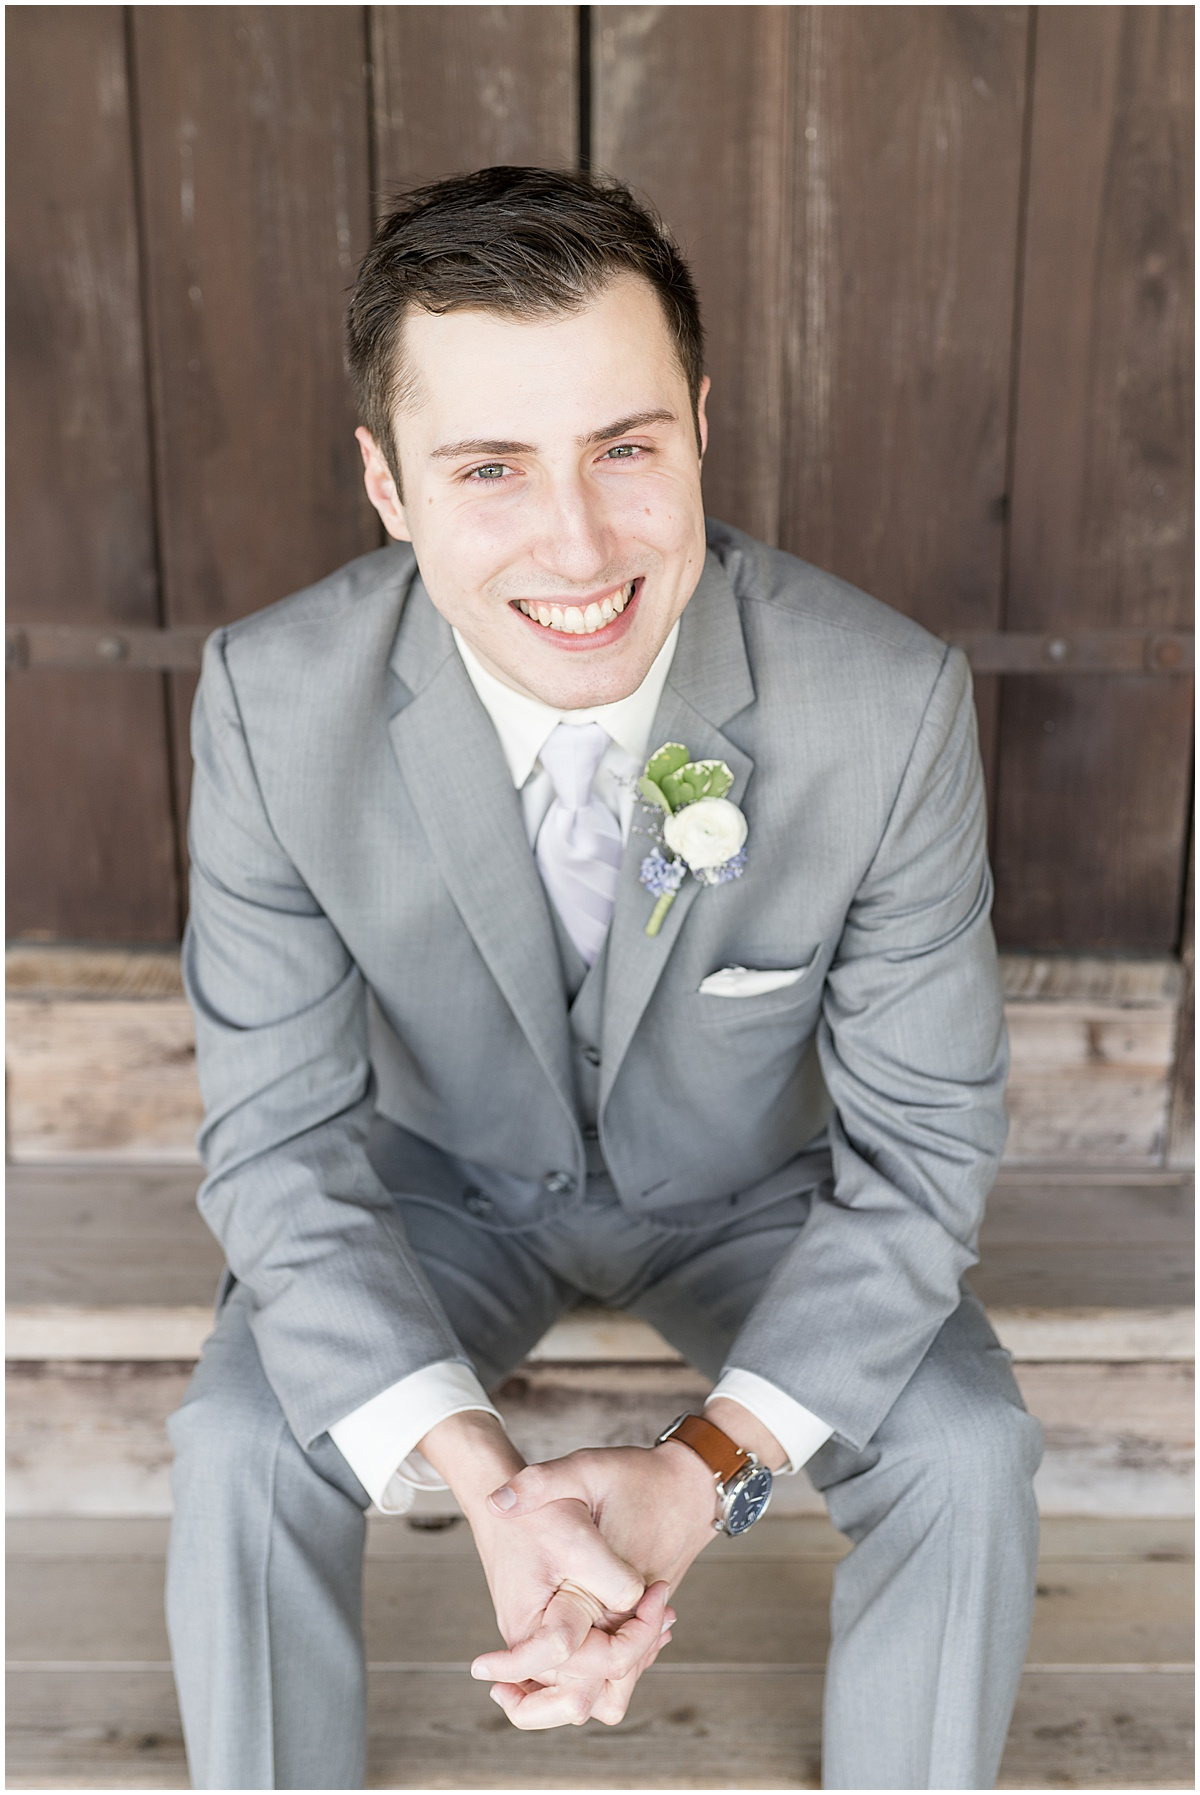 Groom portrait at Traders Point Creamery wedding in Zionsville, Indiana